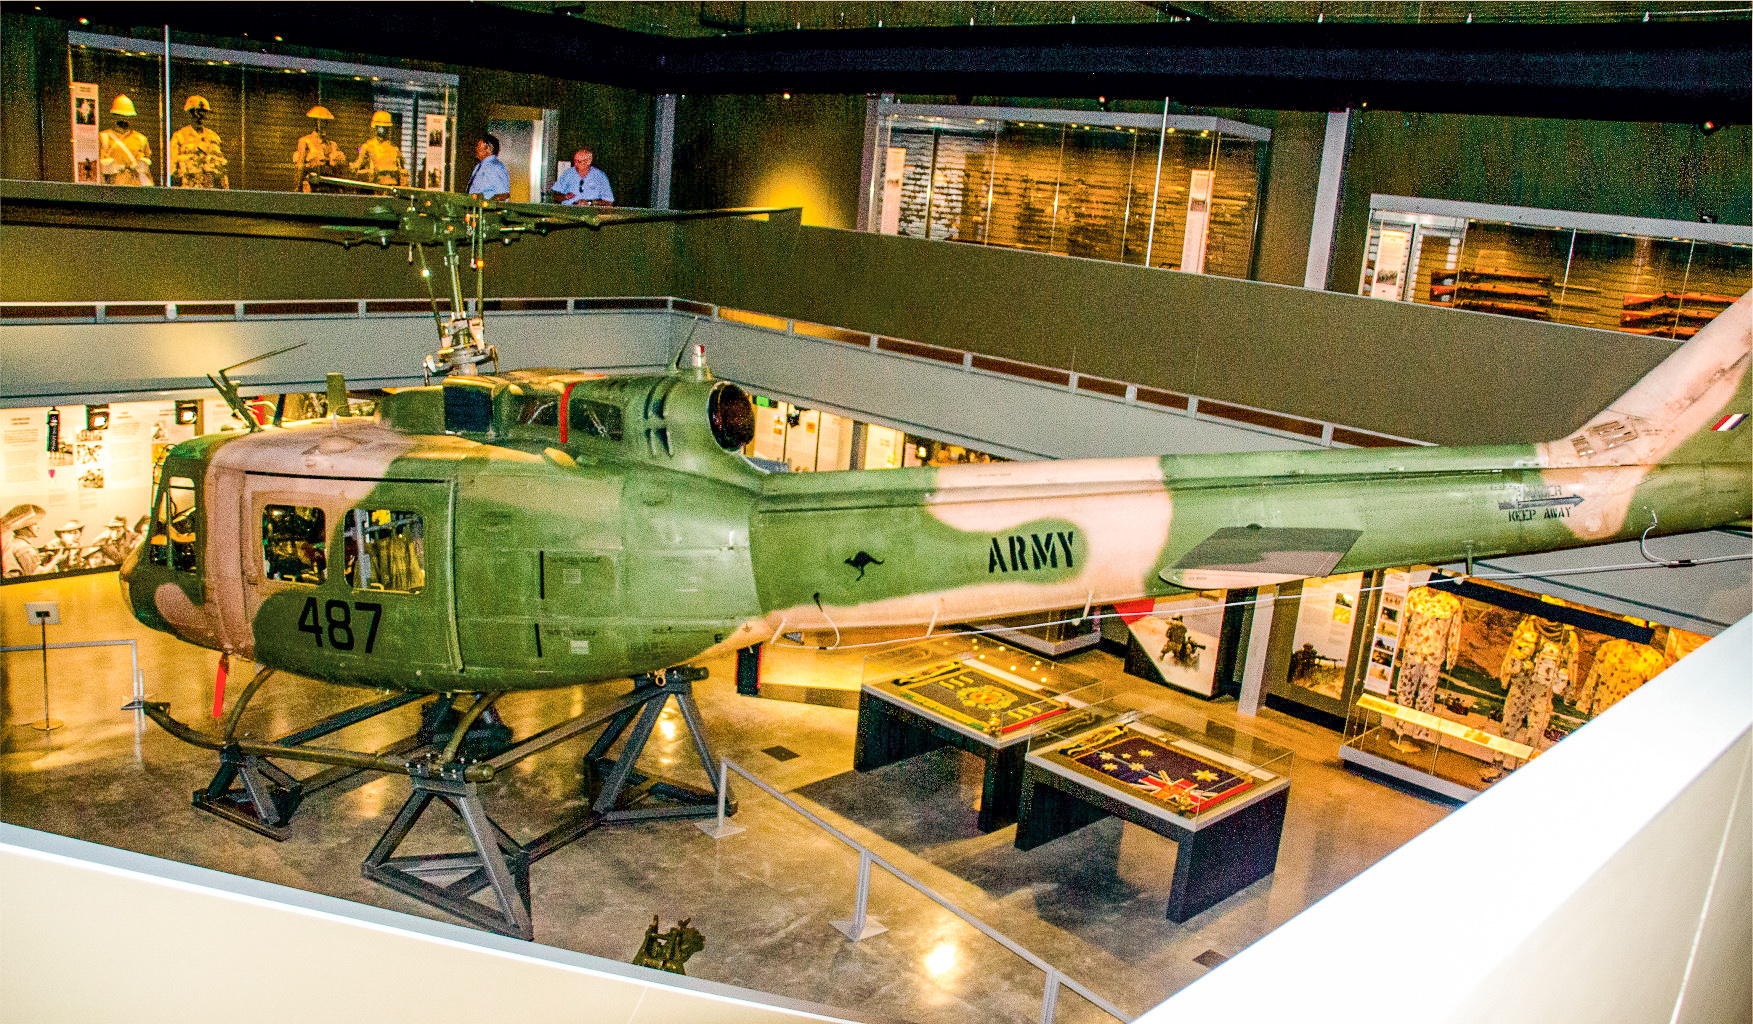 Huey in the museum.